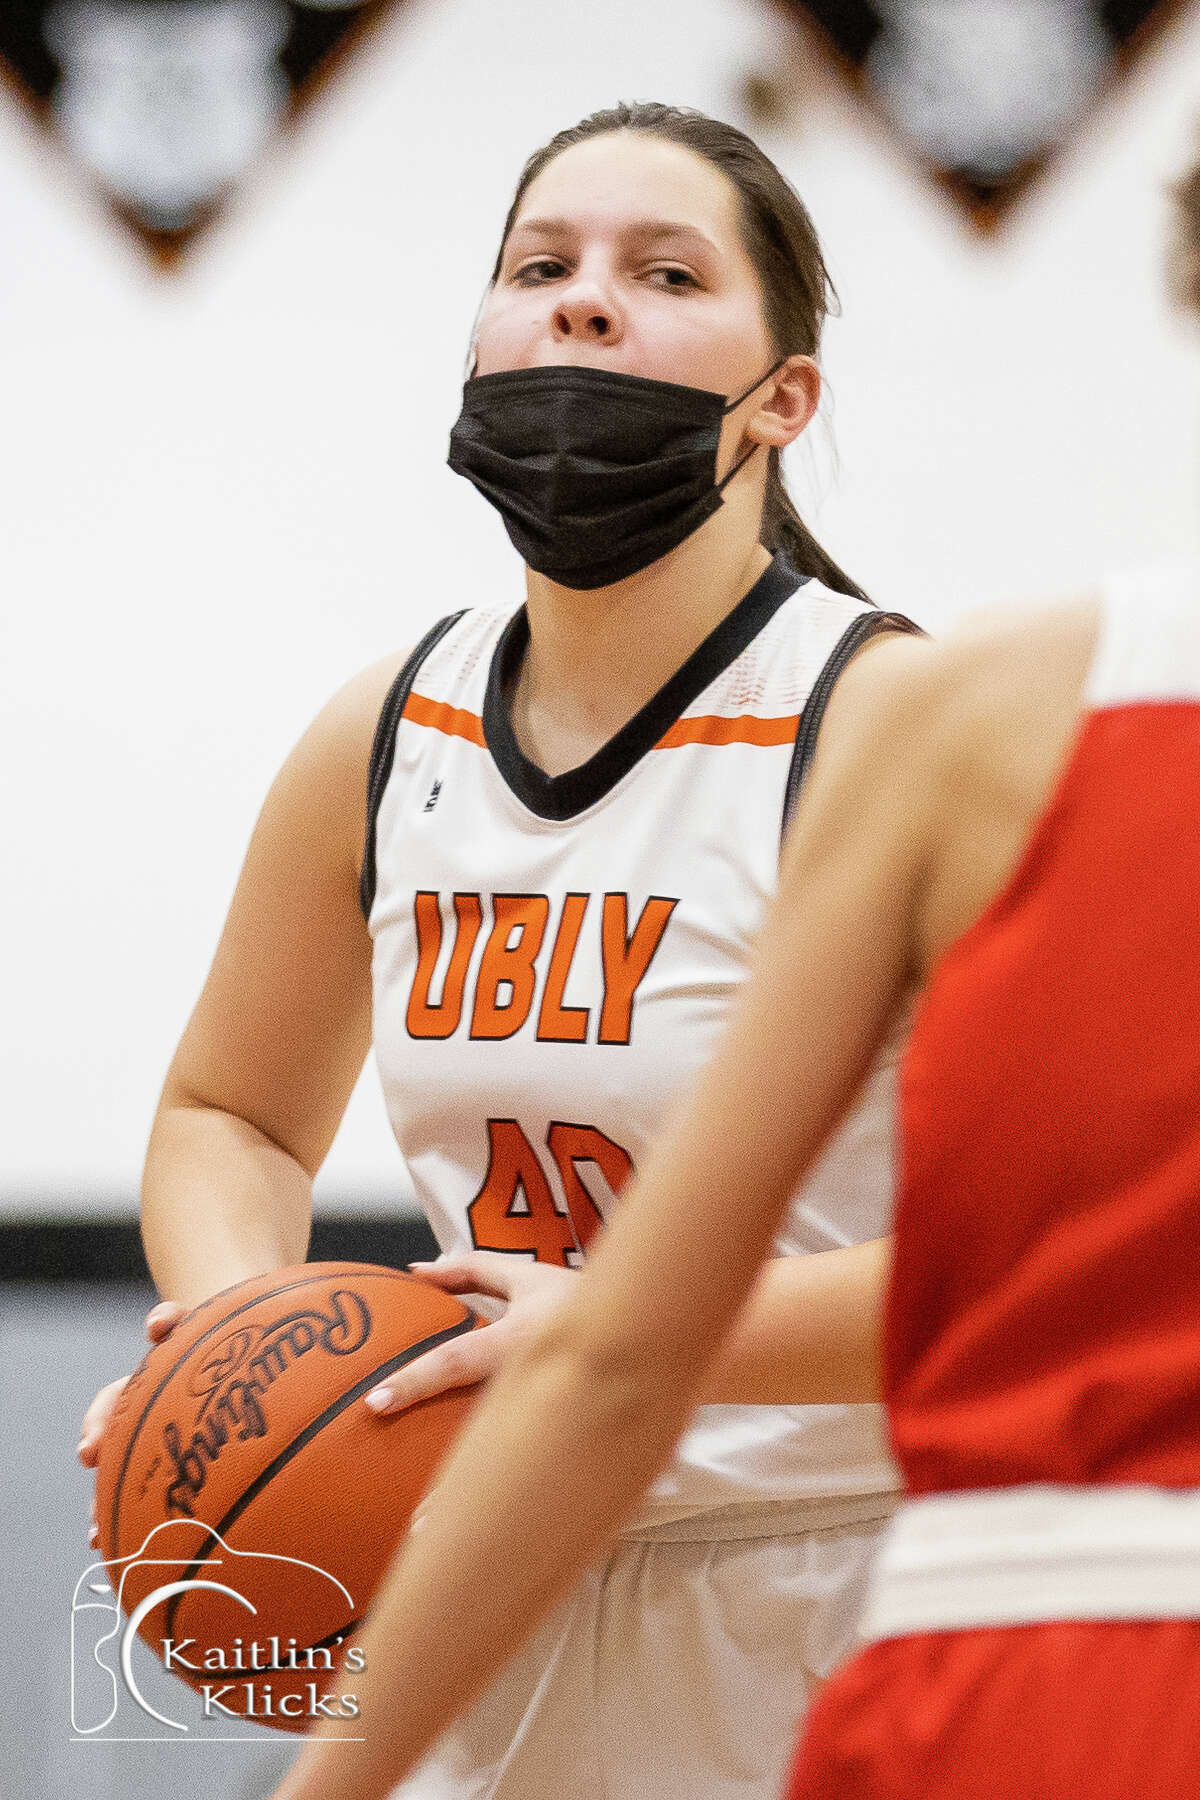 The Ubly girls basketball team beat visiting Marlette on Wednesday night, 42-21, for the Bearcats' fourth straight win.